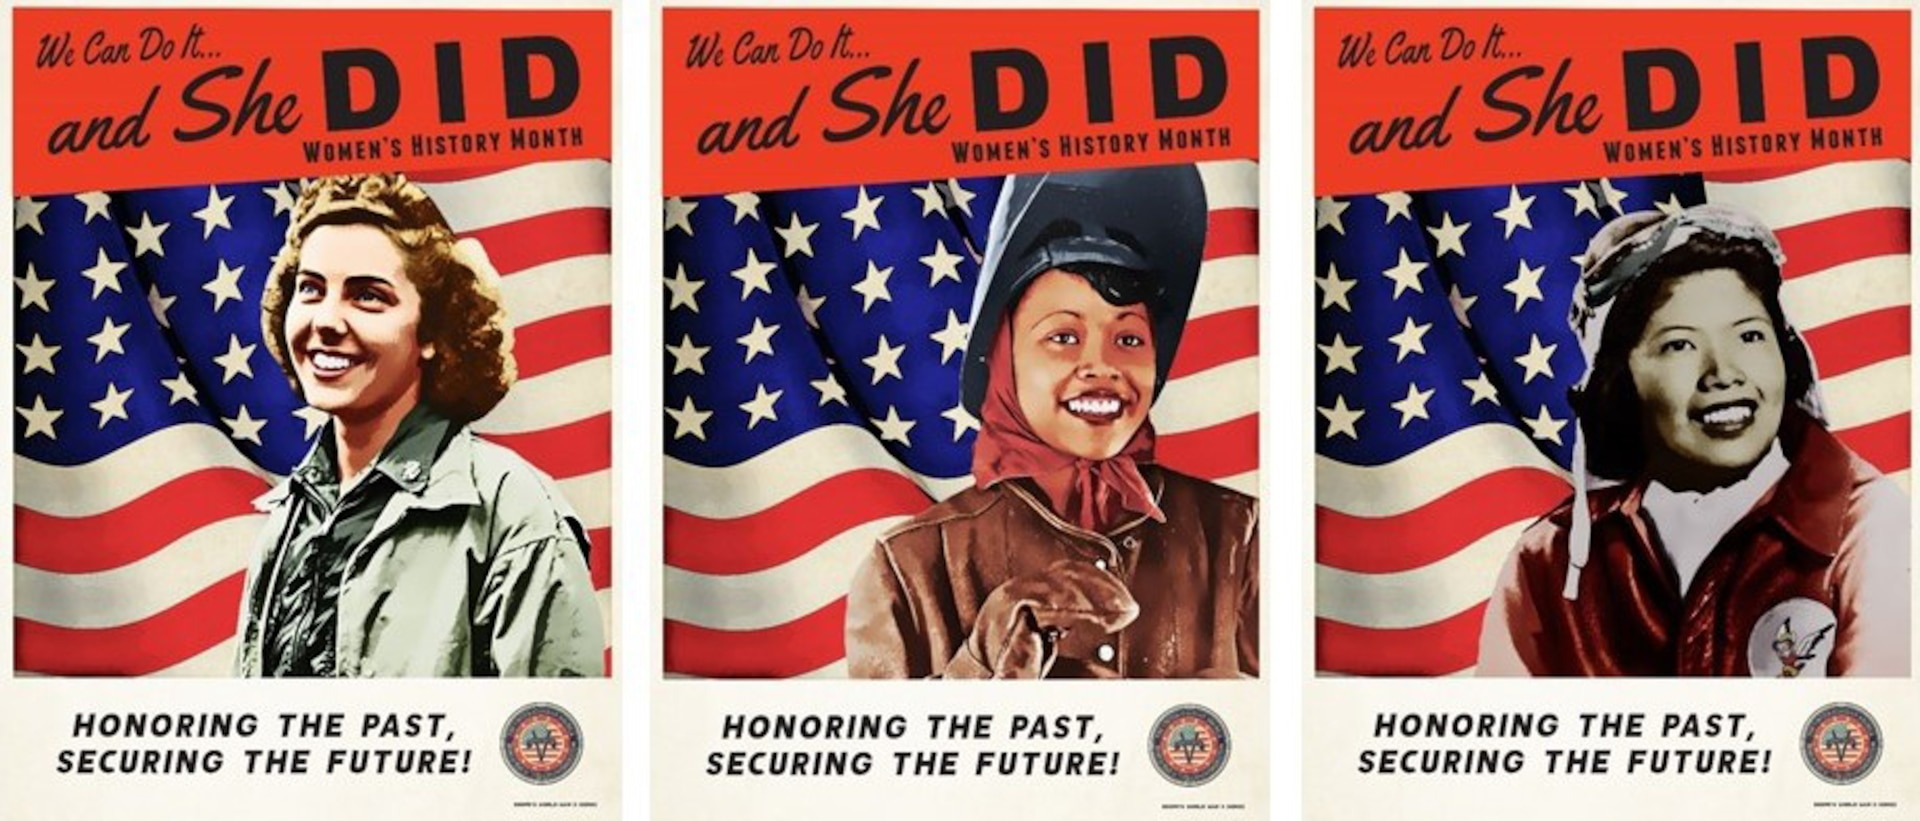 During March, Women's History Month posters will be displayed throughout Joint Base San Antonio